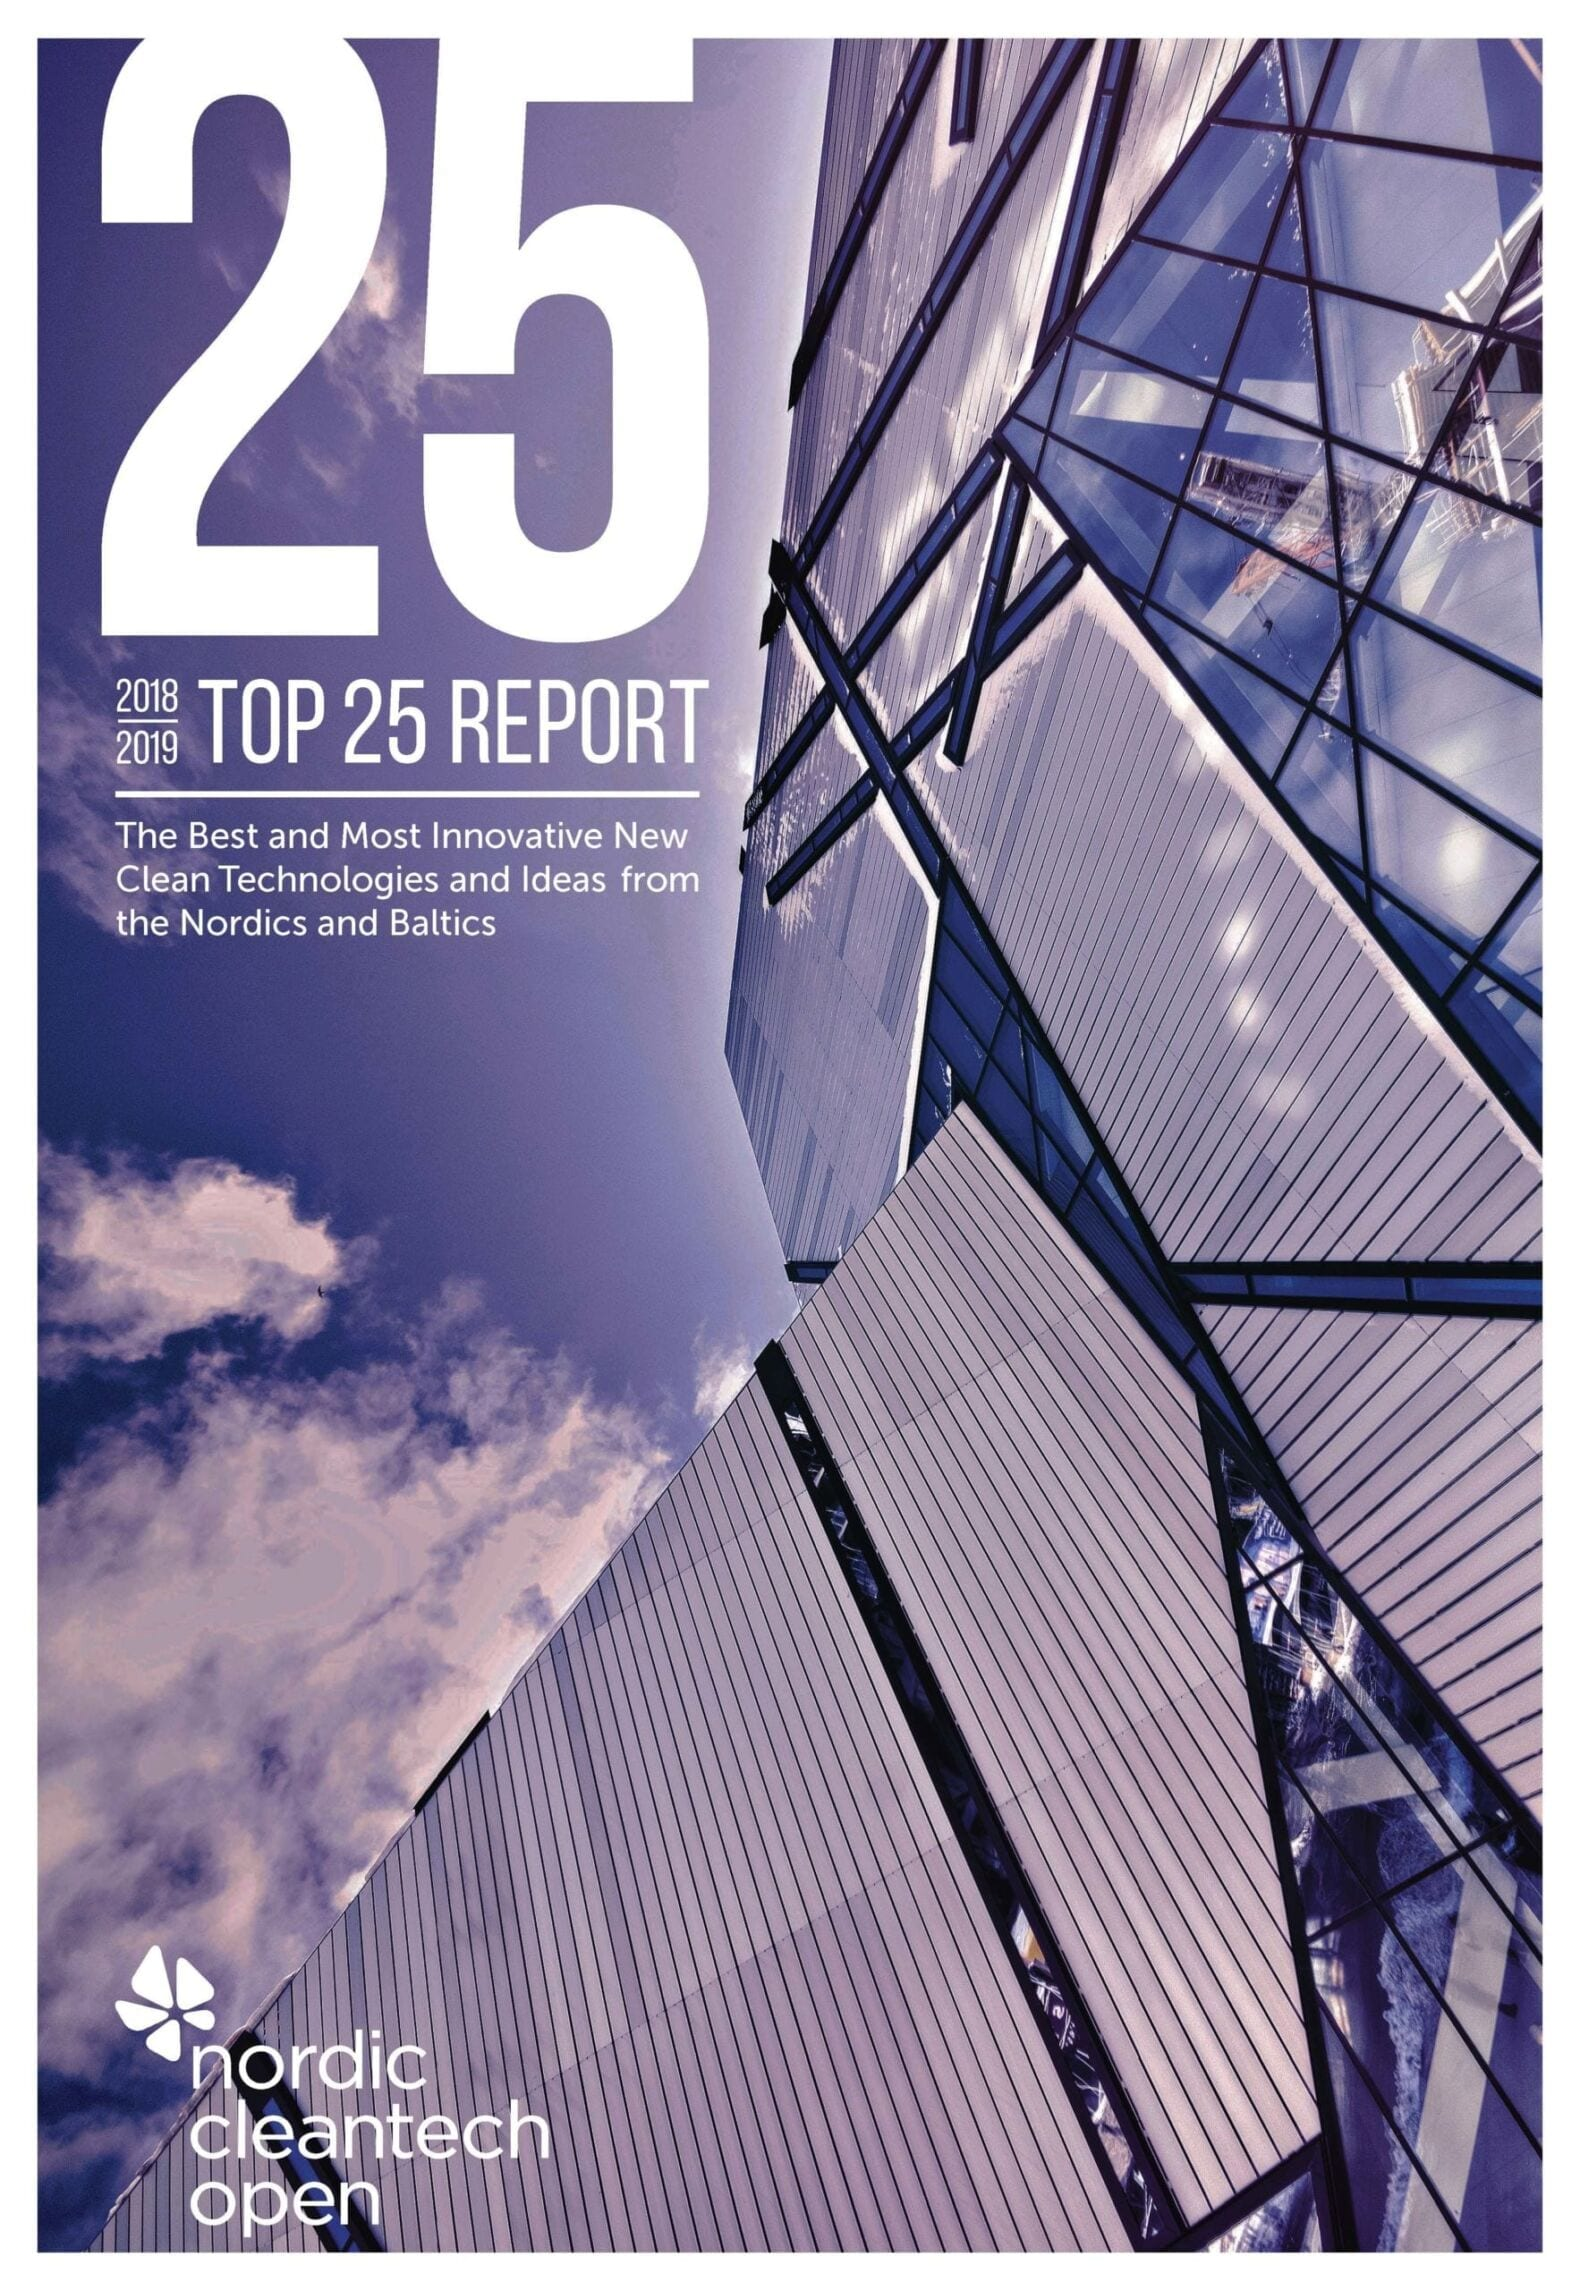 Top 25 Report - Cycle 2018/19